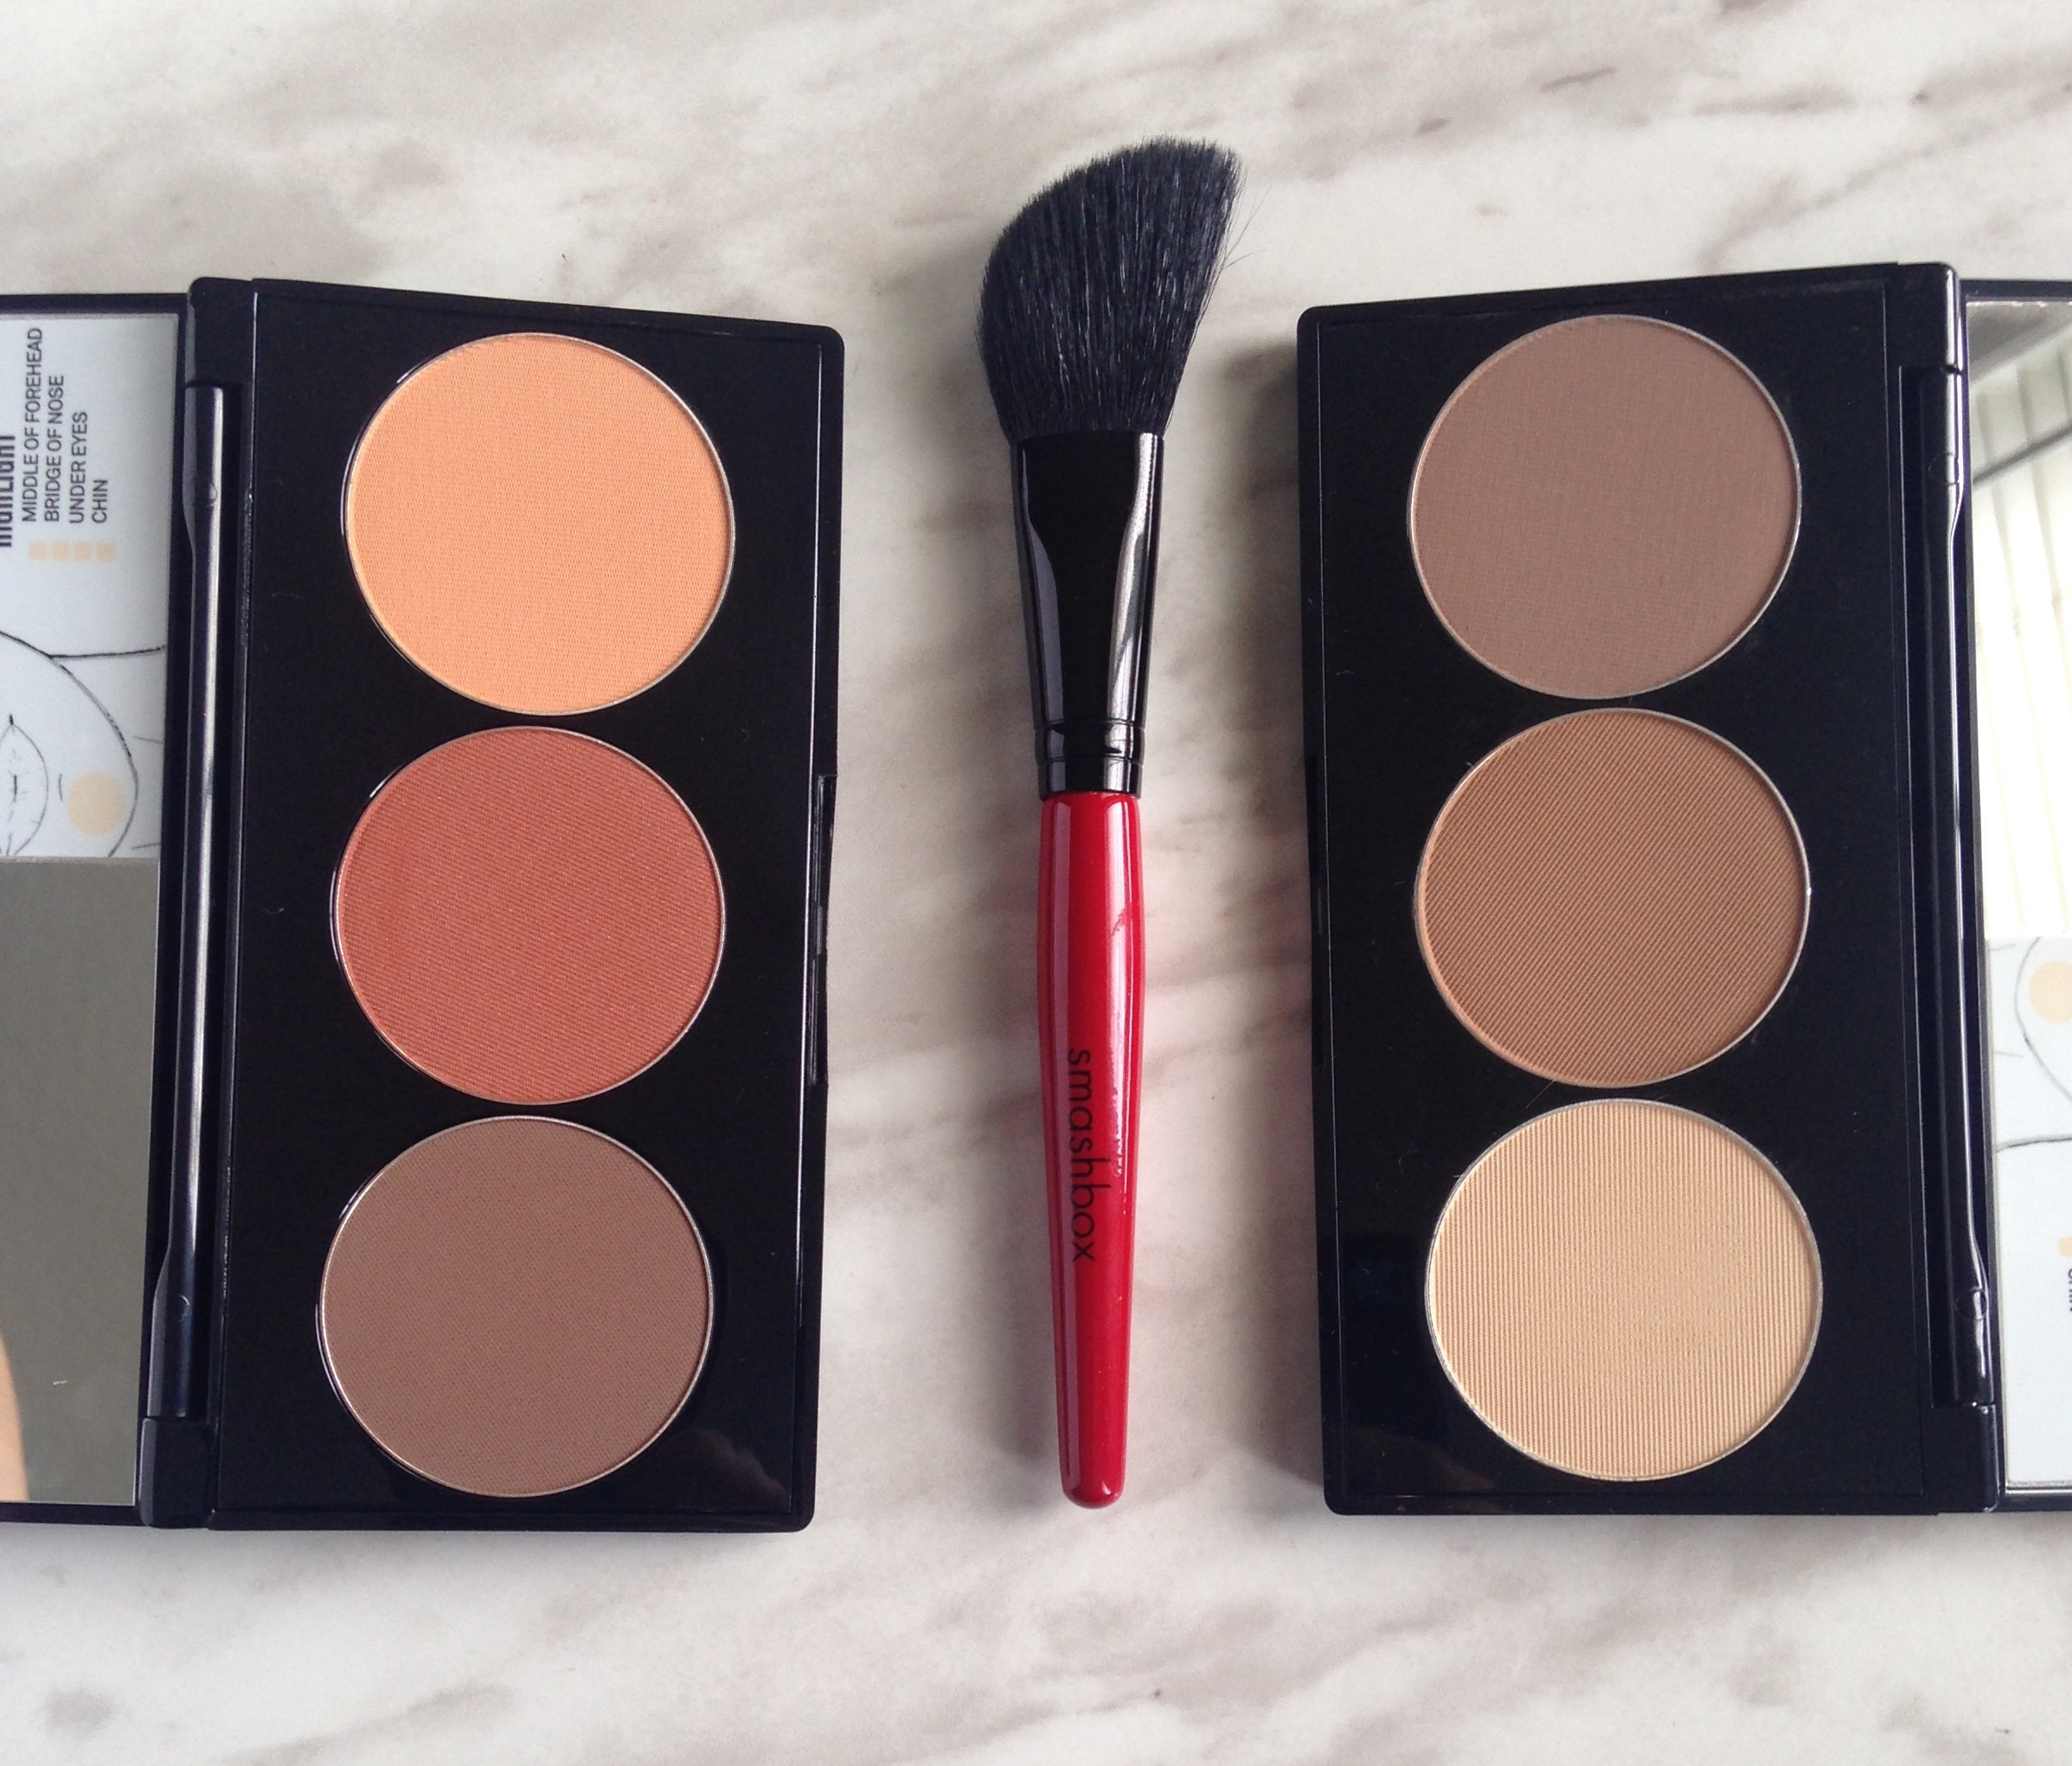 The Smashbox Step By Step Contour Palette Contains What Is Believed To Be  Everything You Need To Sculpt Your Whole Face A 6 Inch Palette Houses 3  Generous